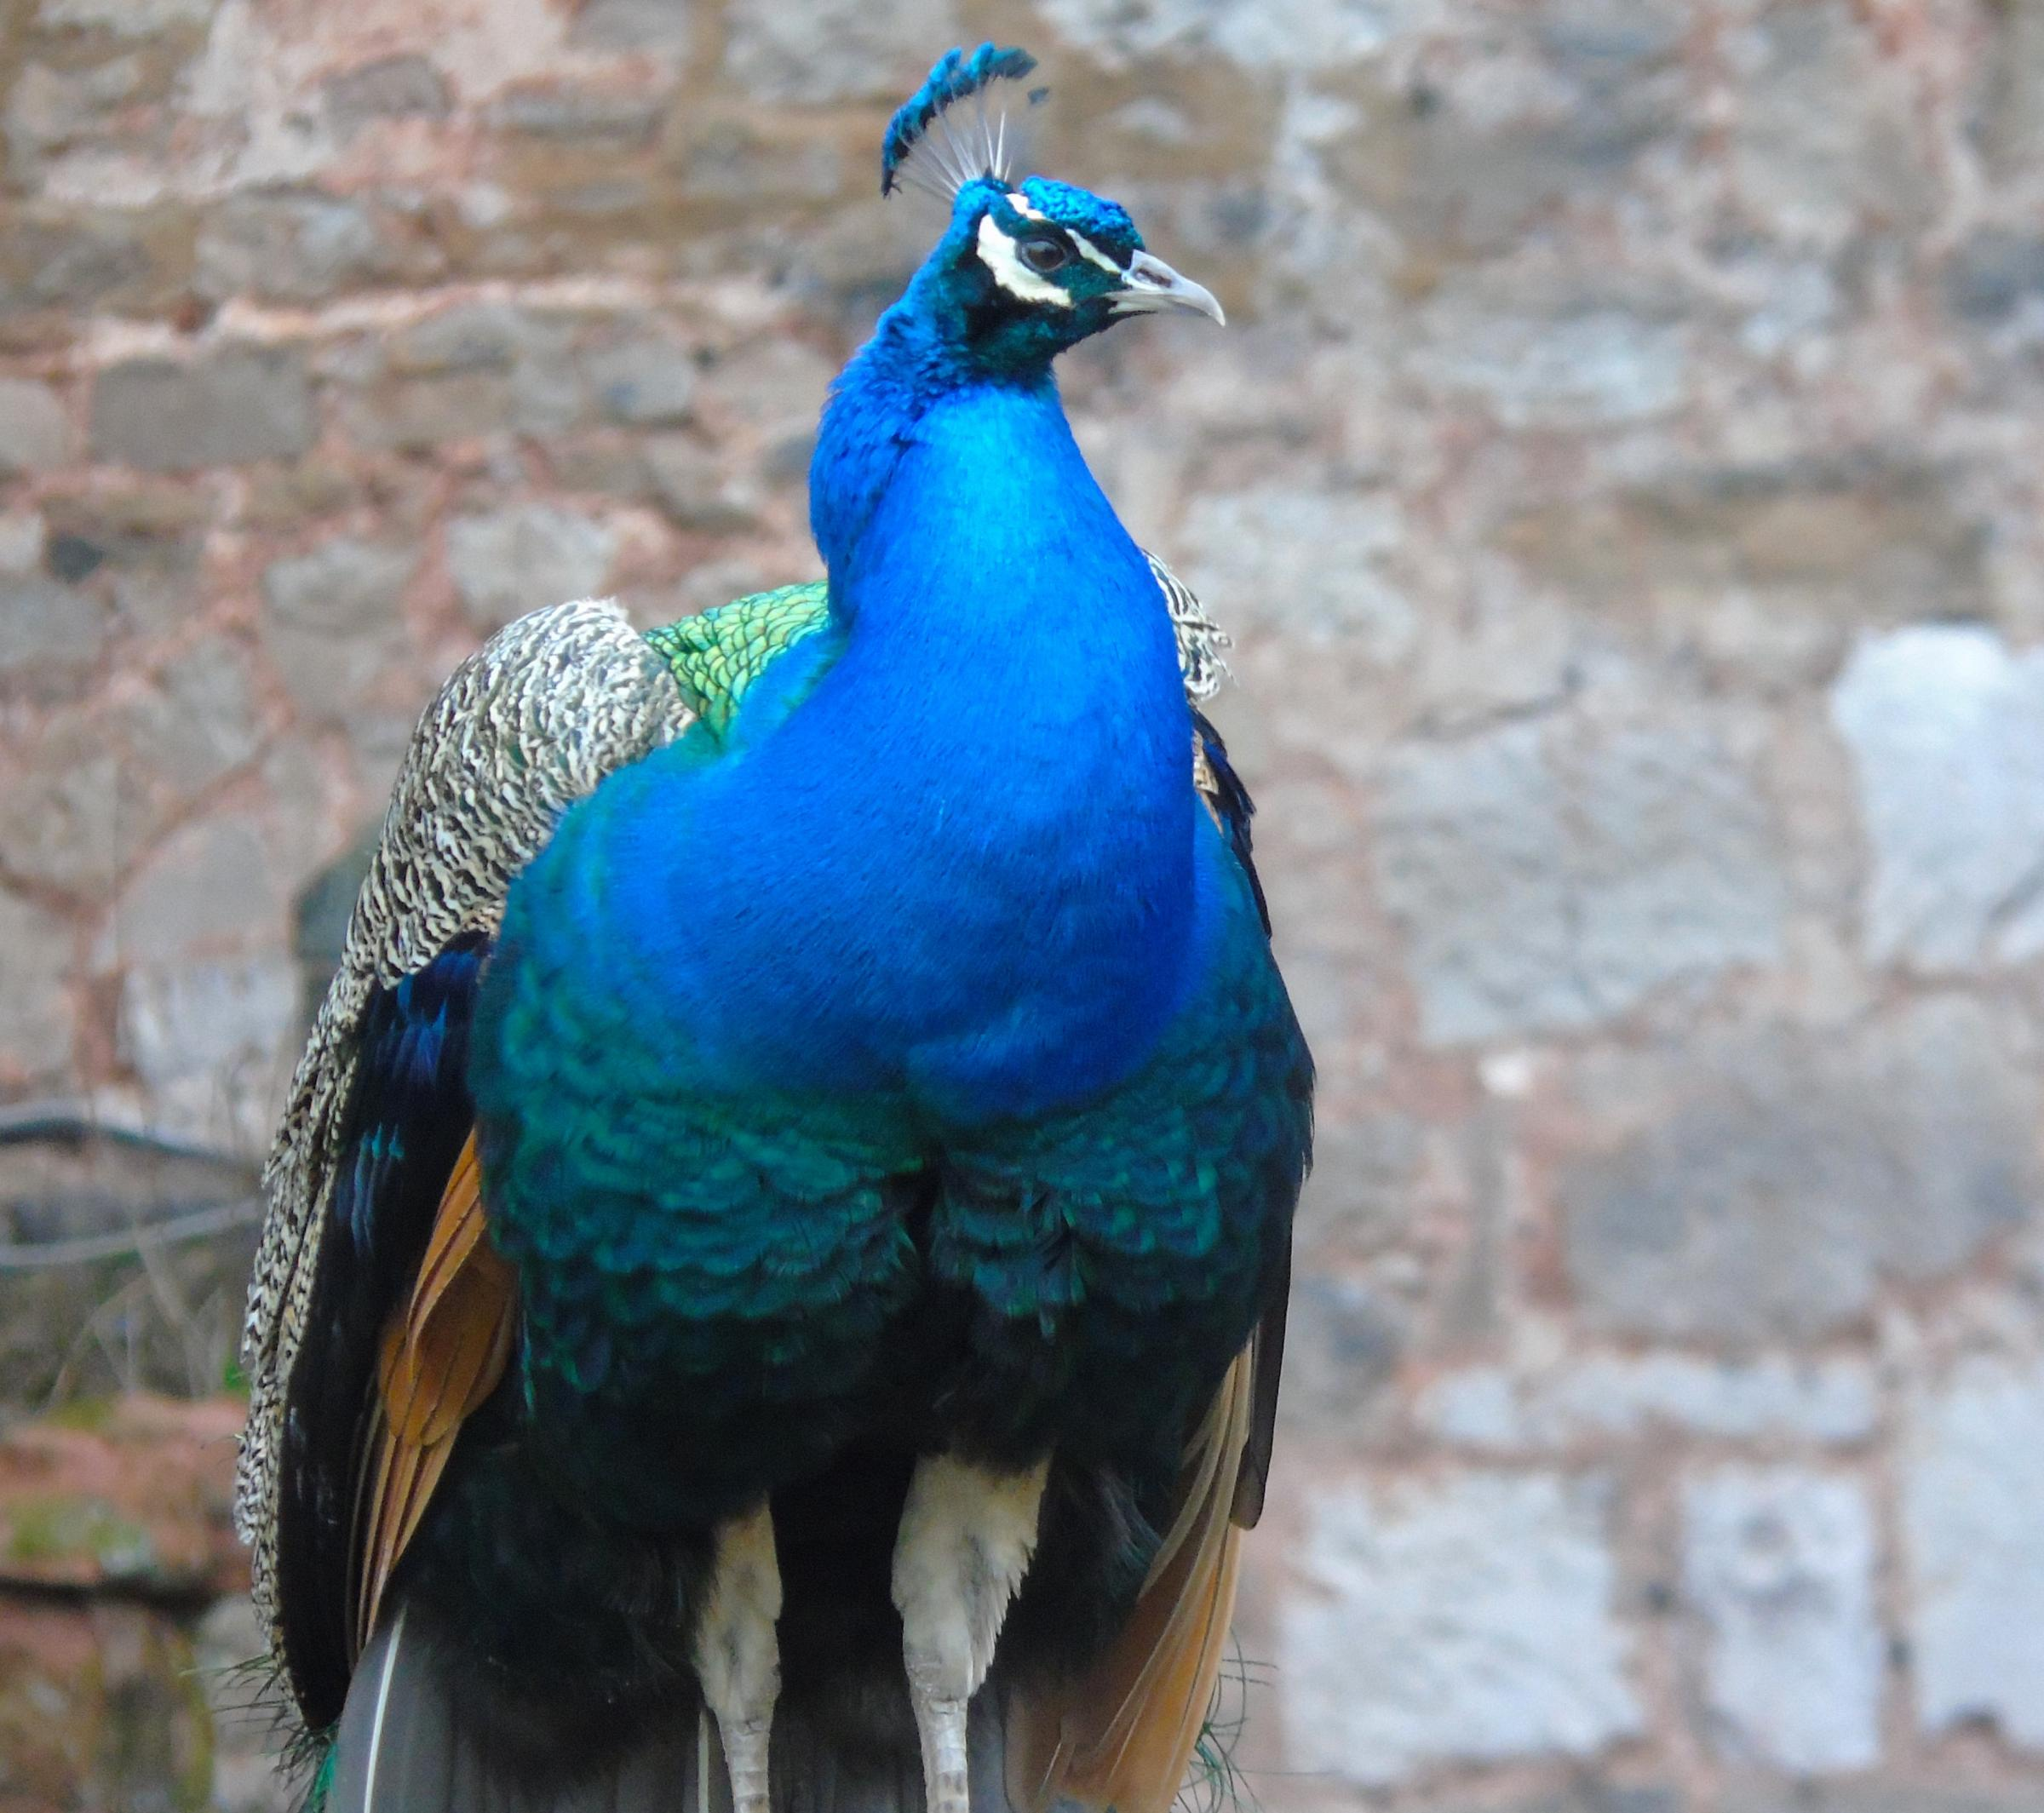 STEPHEN Bromley, from Caia Park, Wrexham, came across this proud peacock on a visit to Ruthin Castle.If you would like to supply an image to be included as the picture of the week, send an e-mail to shaun.davies@newsquest.co.uk